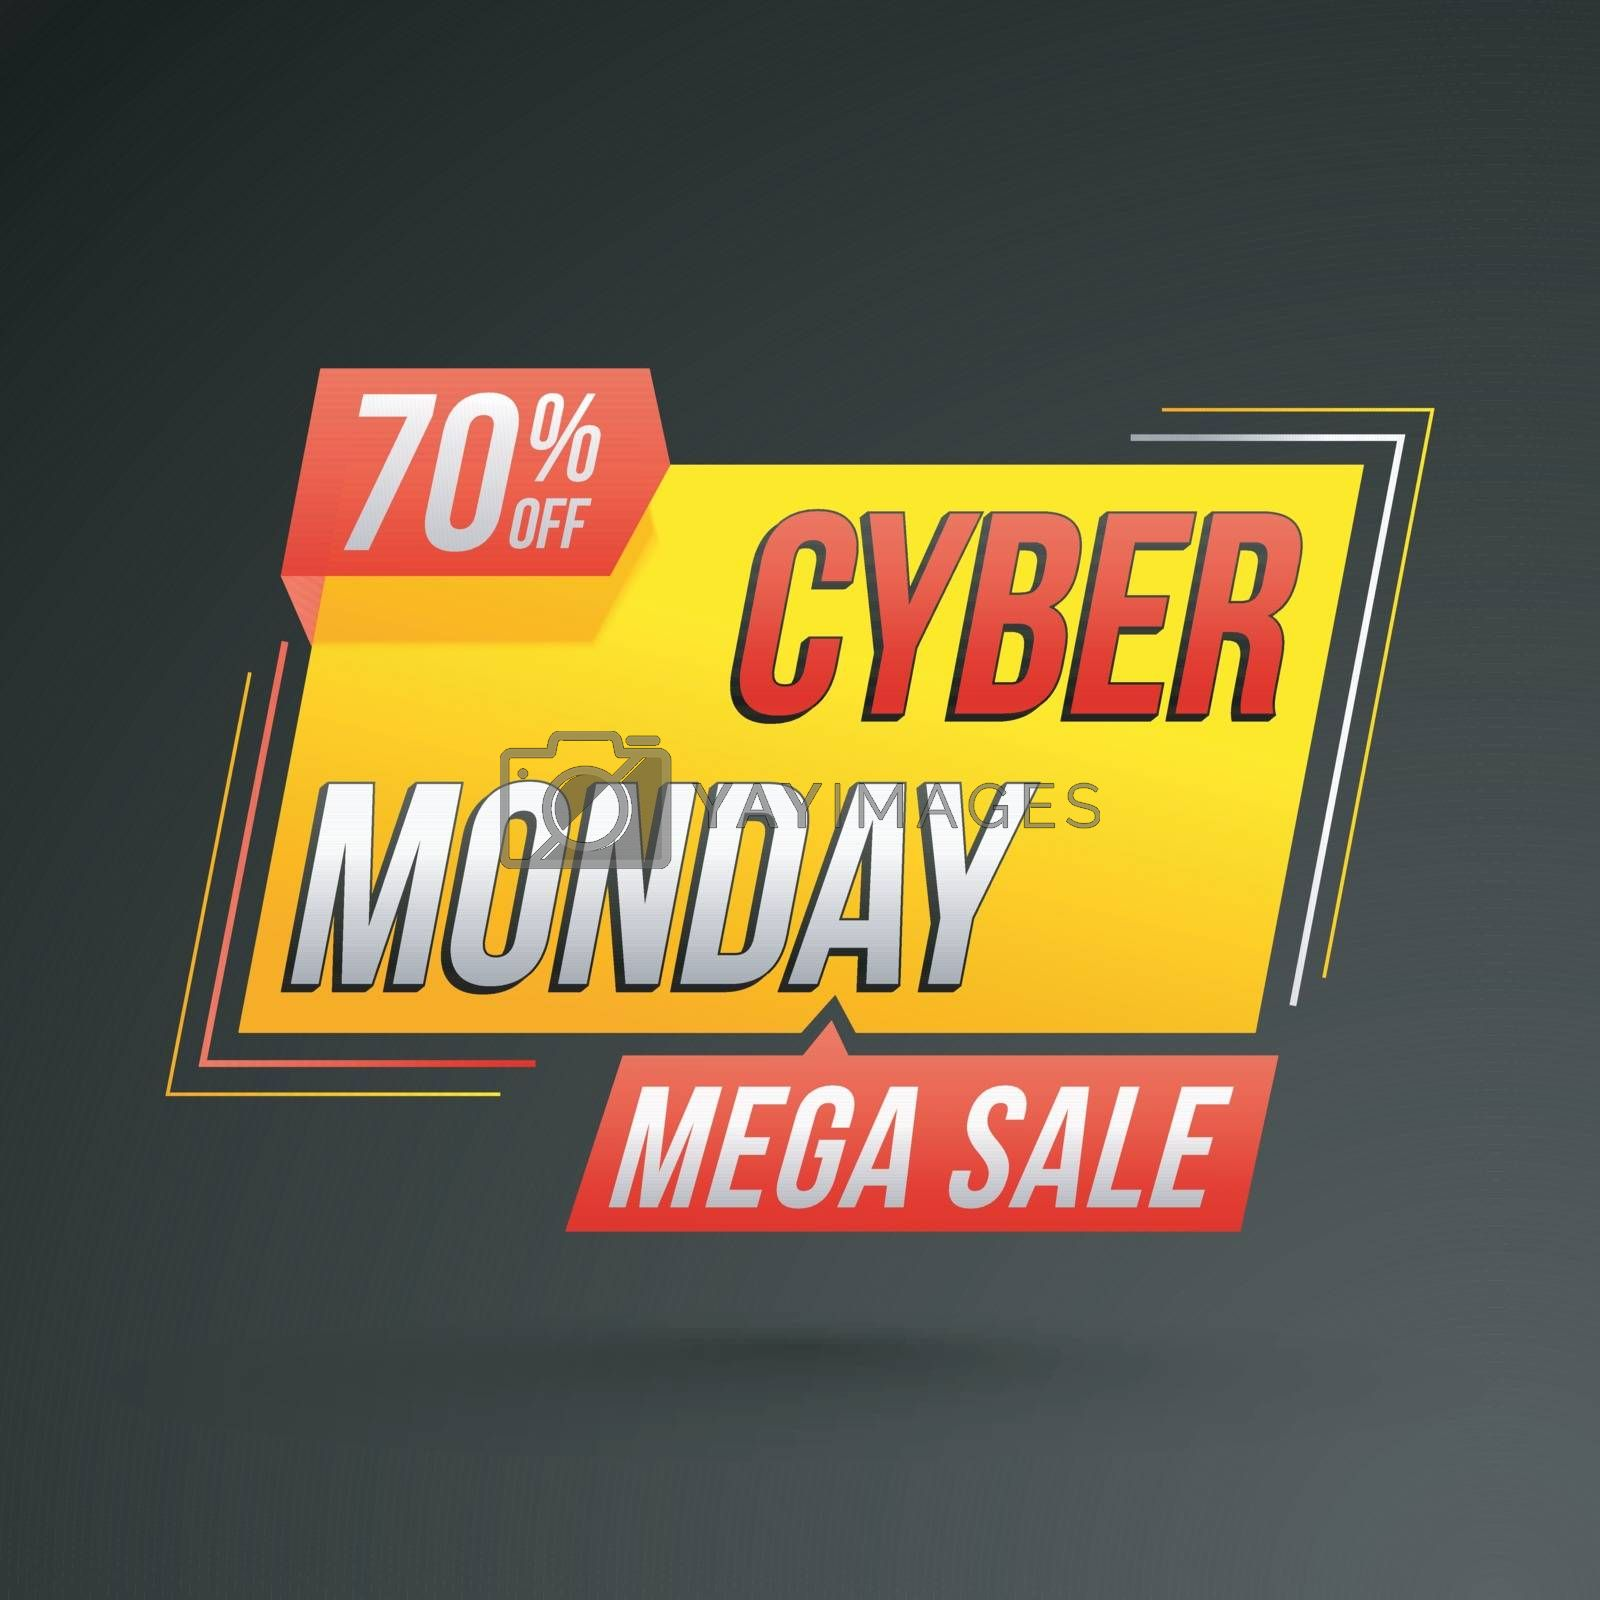 Mega sale template or flyer design with 70% discount offer for Cyber Monday Sale.